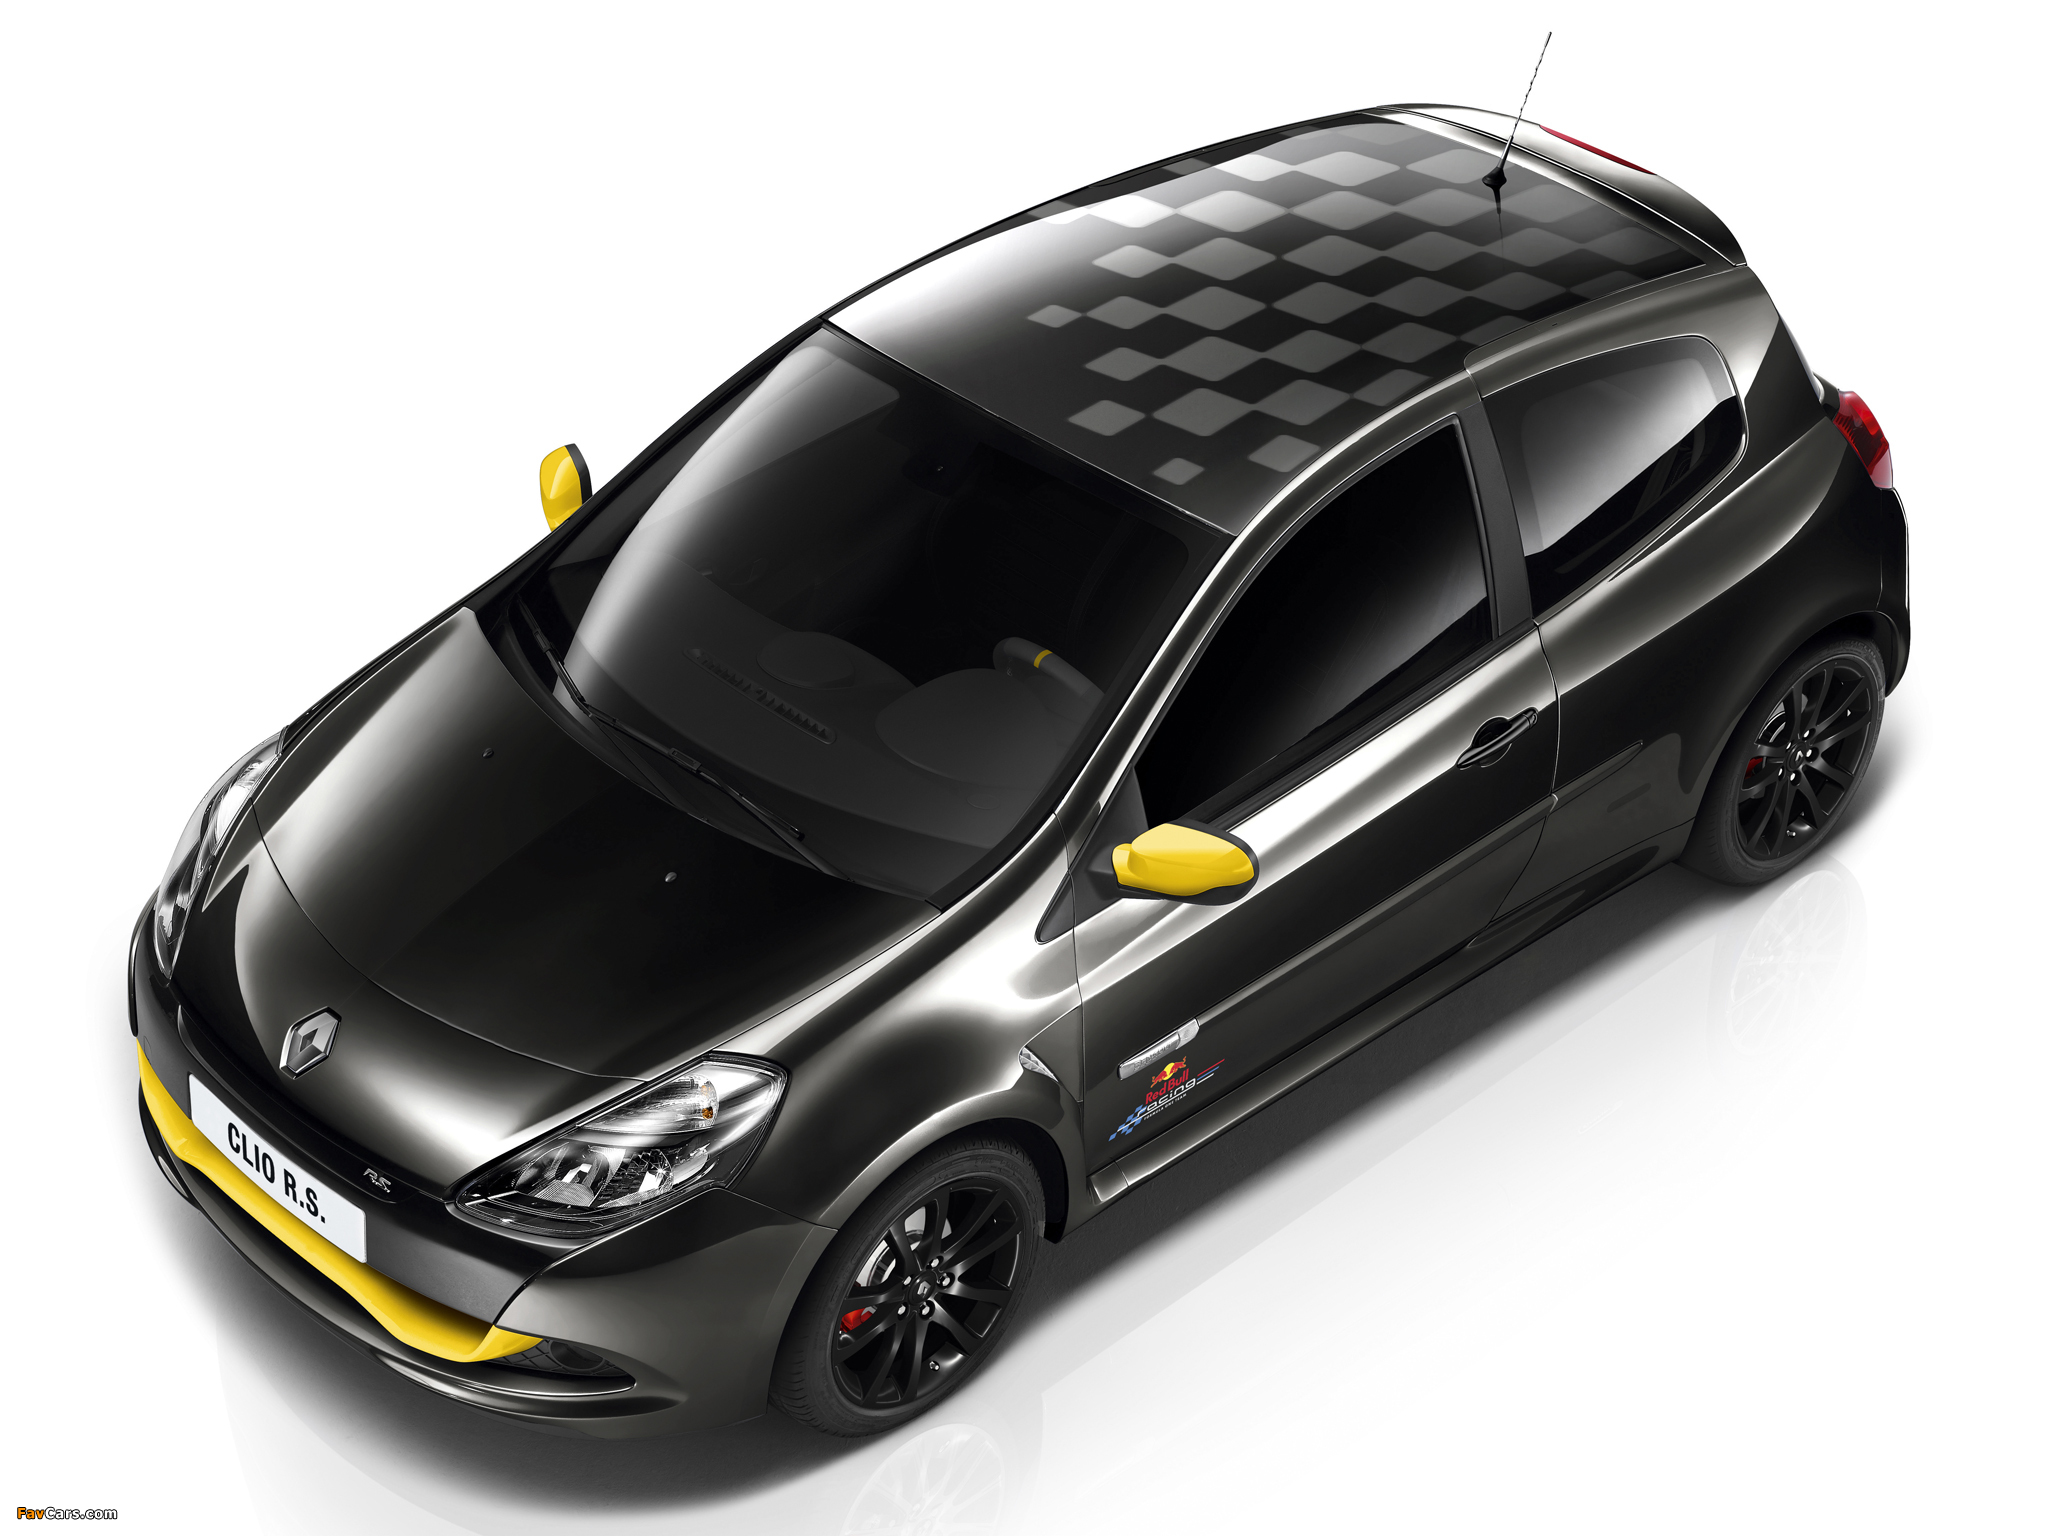 Renault Clio R.S. Red Bull Racing RB7 2012 wallpapers (2048 x 1536)